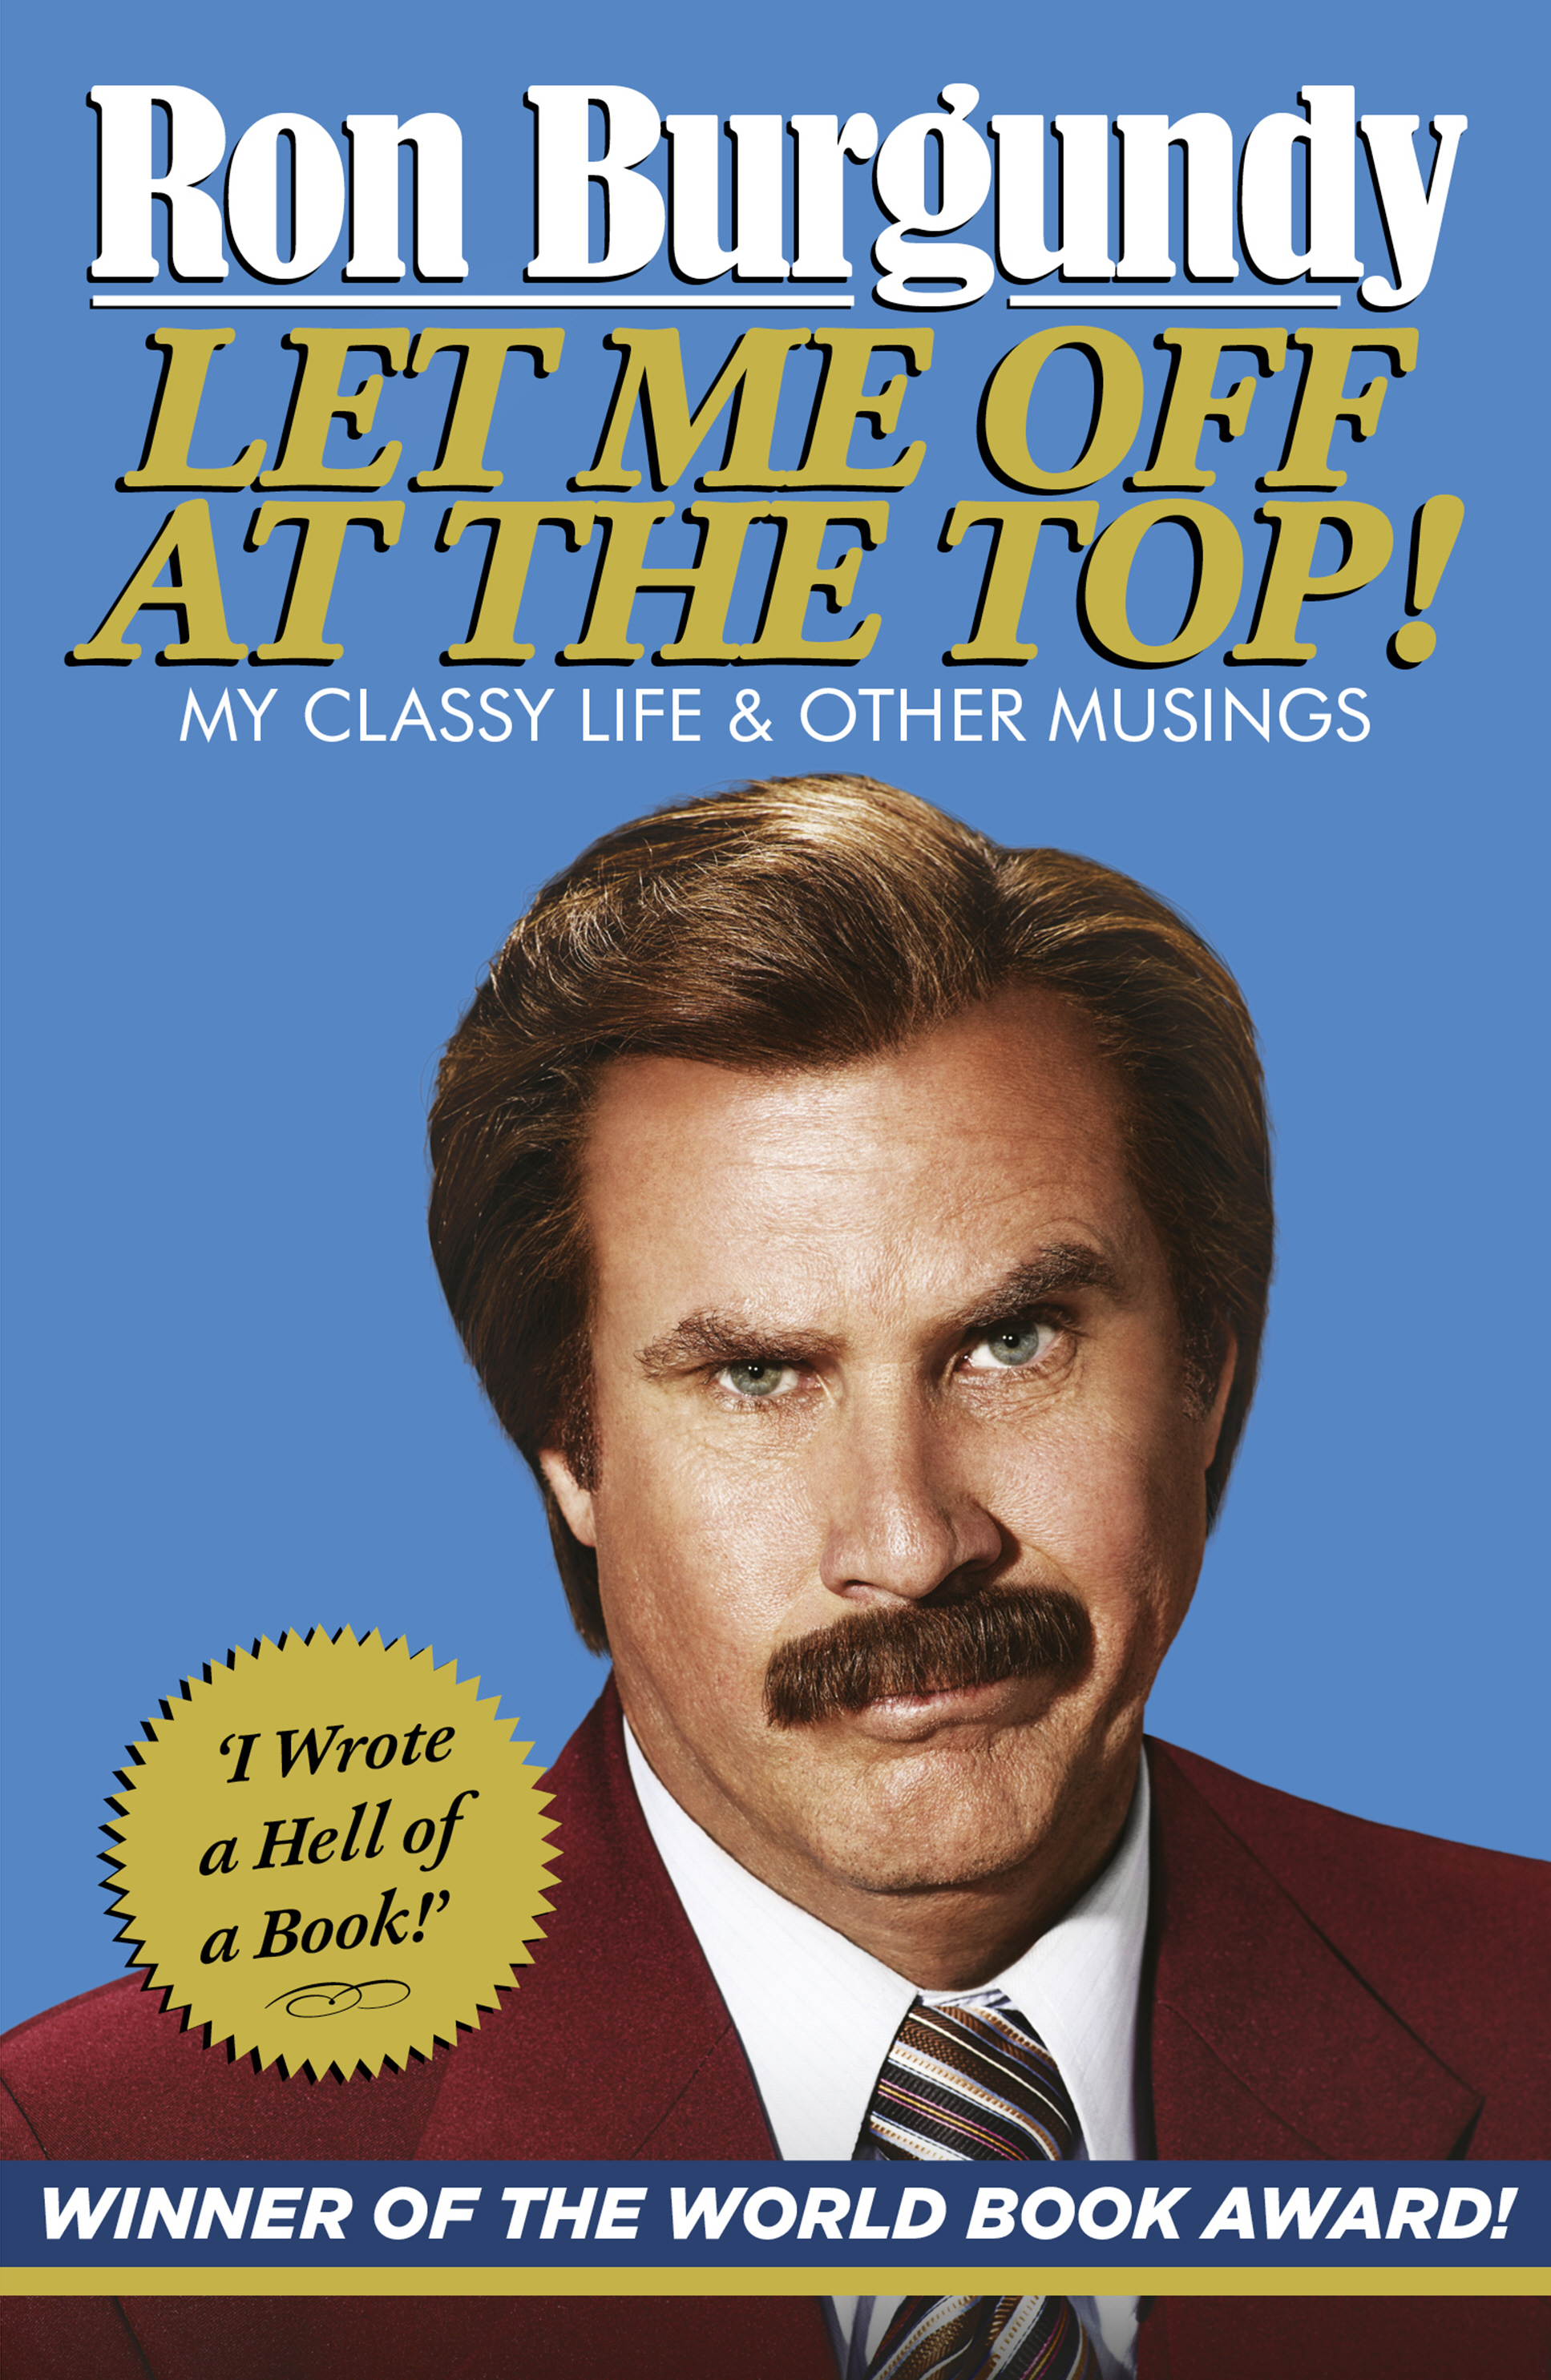 Let Me Off at the Top! My Classy Life and Other Musings